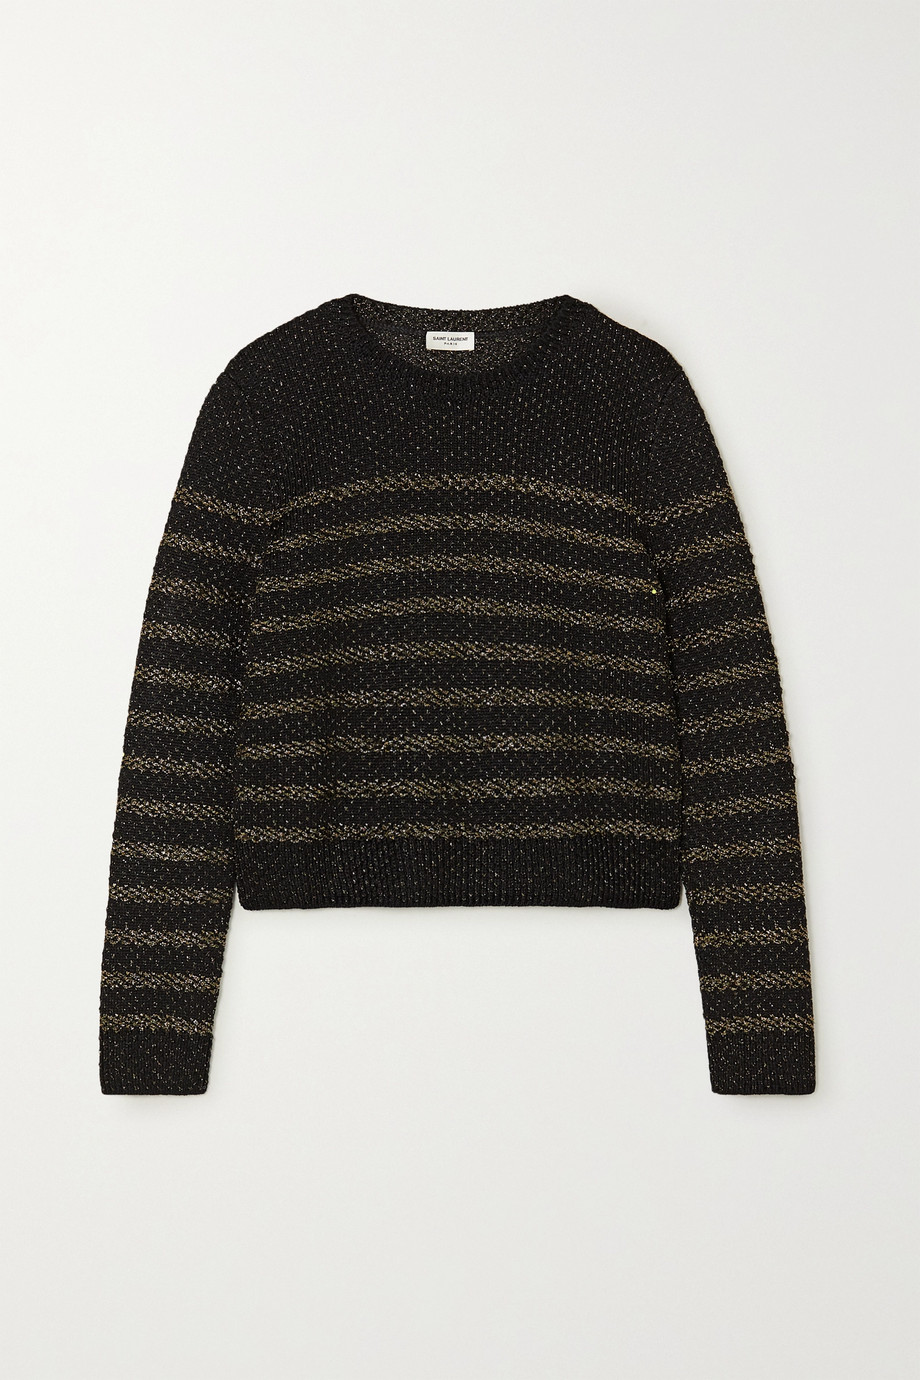 SAINT LAURENT Striped Lurex sweater